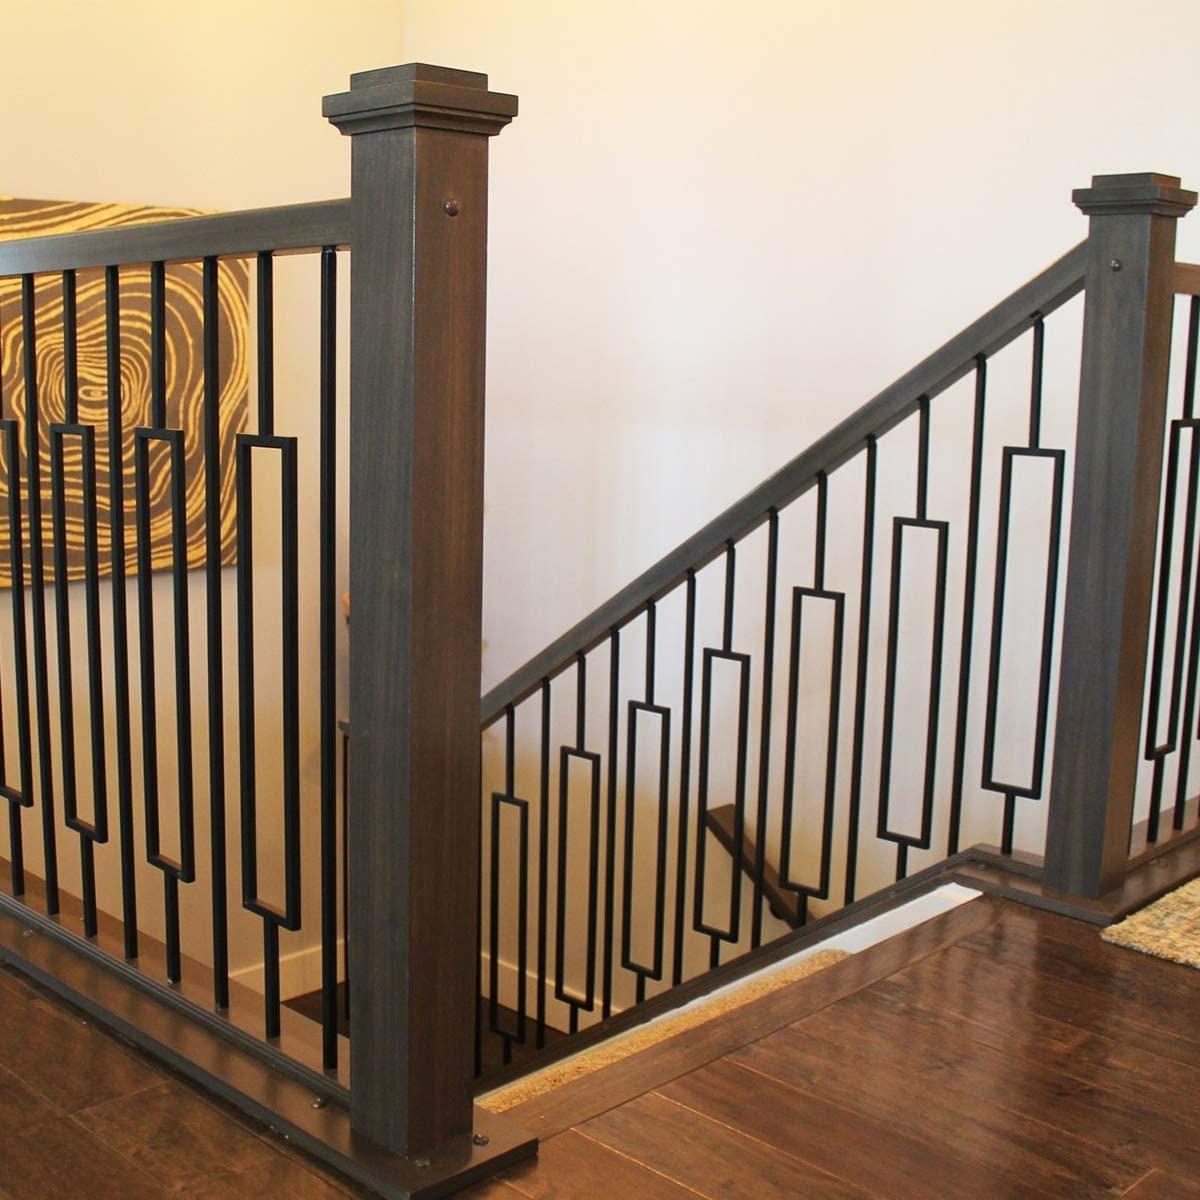 Contemporary Rectangle Stair Wrought Iron Balusters 10 Pack | Banister Rail And Spindles | Component | Interior | Lj Smith | Newel Post | Porch